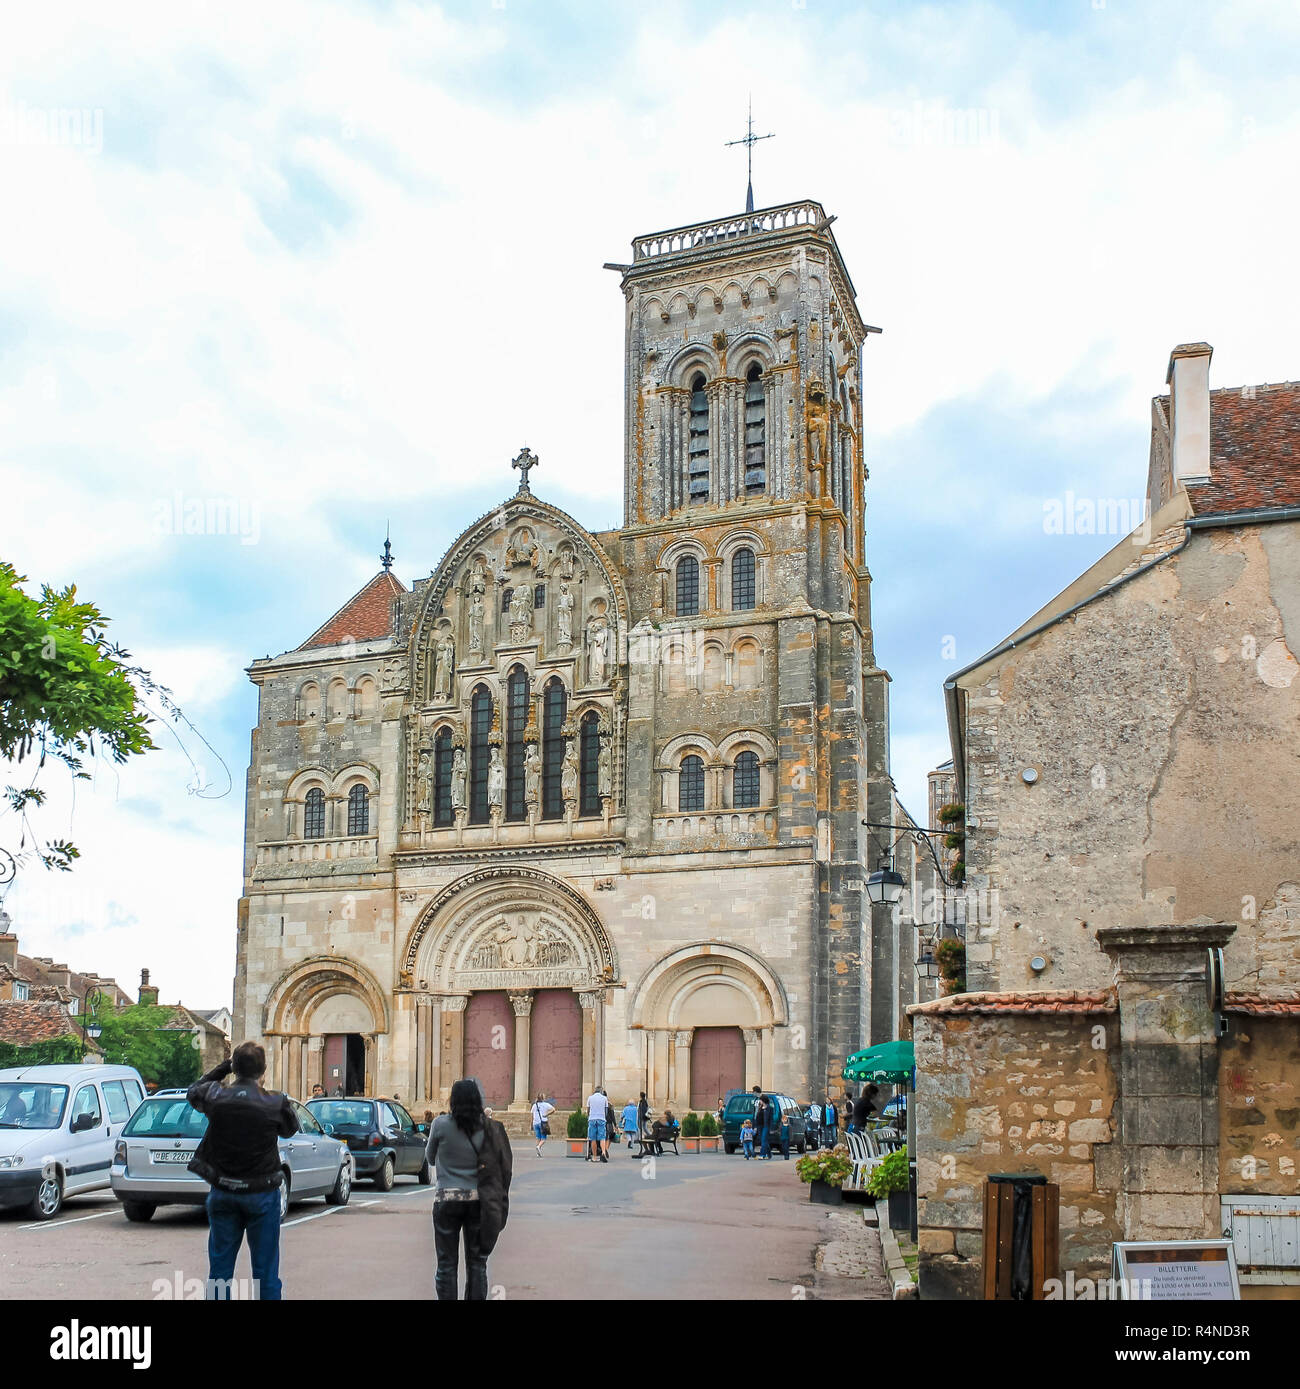 VEZELAY, FRANCE - JULY 28, 2011: Village scene, with the Benedictine abbey church and visitors. - Stock Image